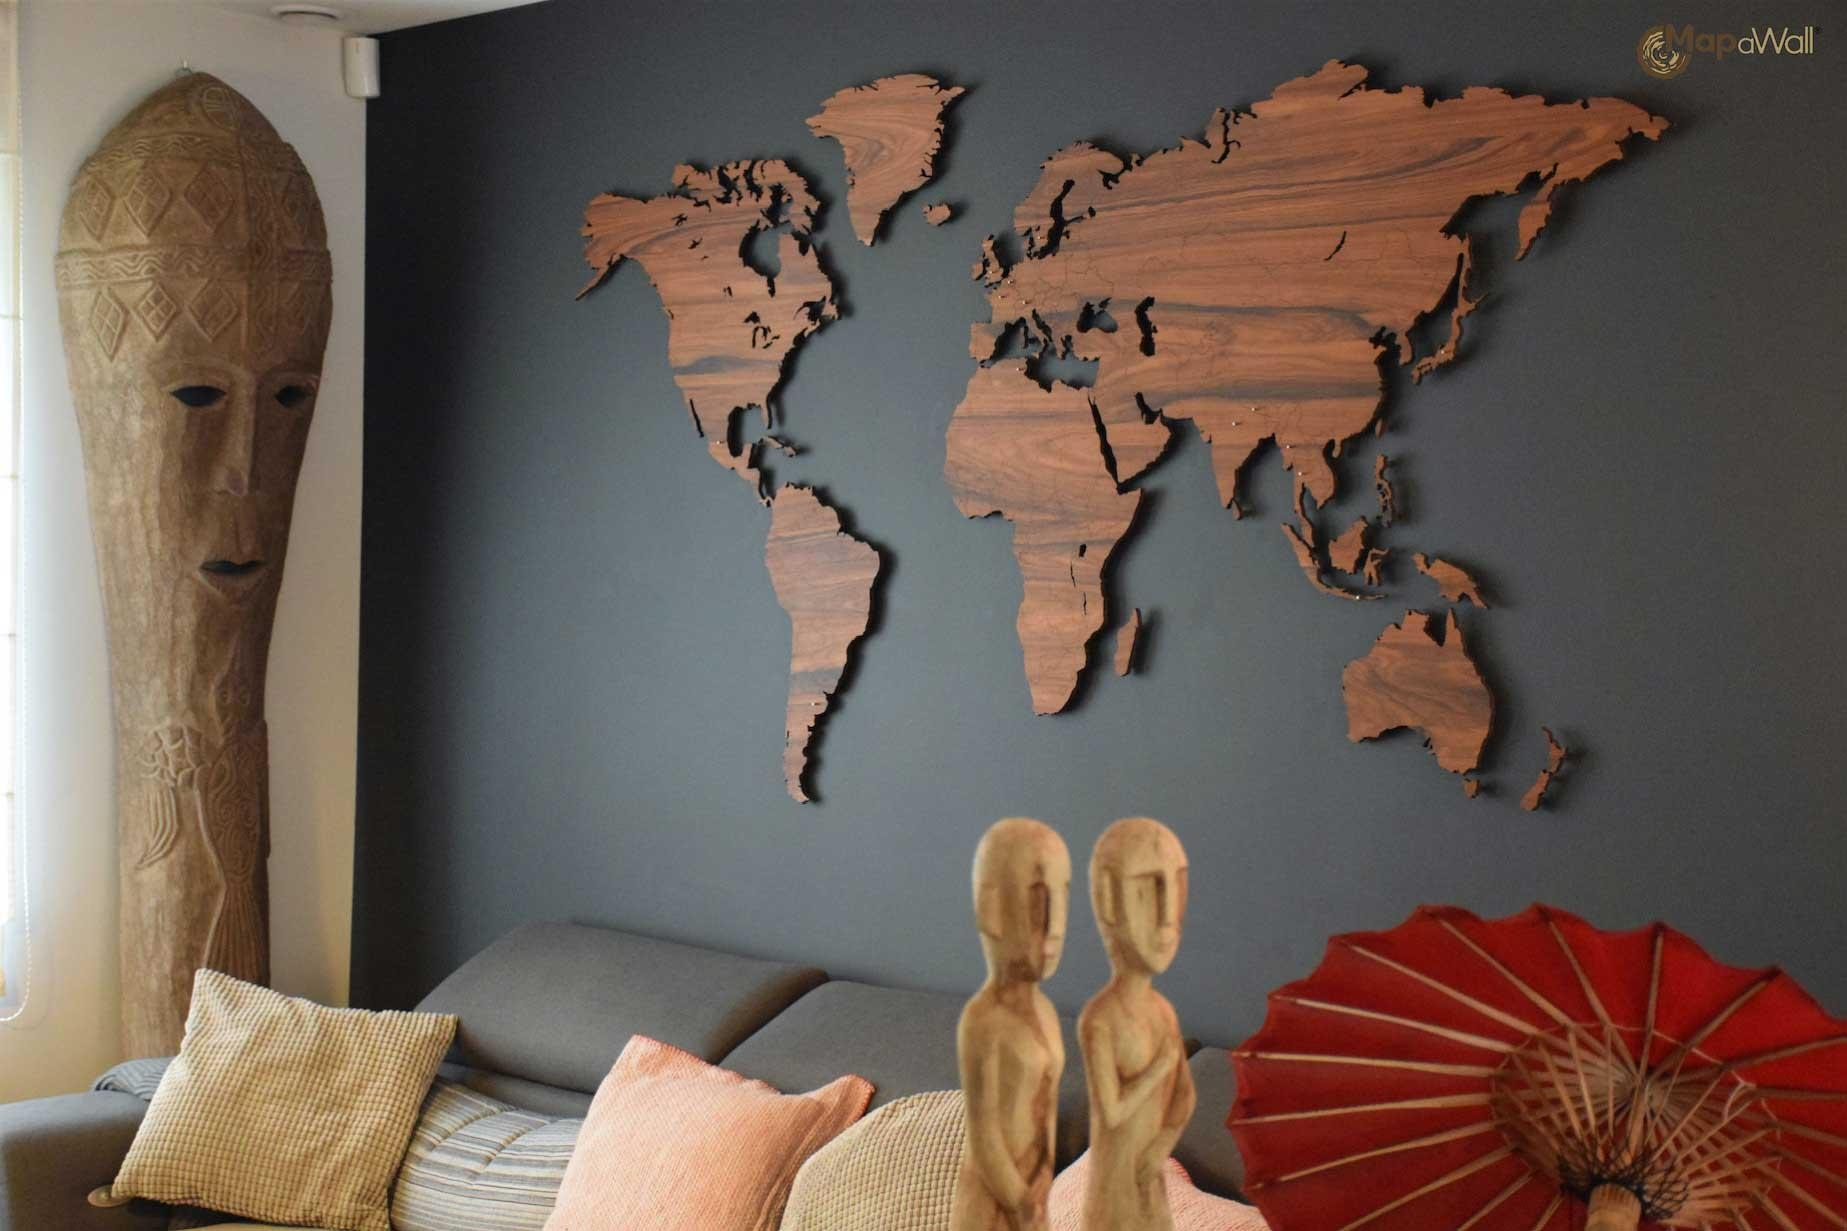 Mapawall Wooden World Map Palisander With Country Borders Pertaining To Wooden World Map Wall Art (View 14 of 20)